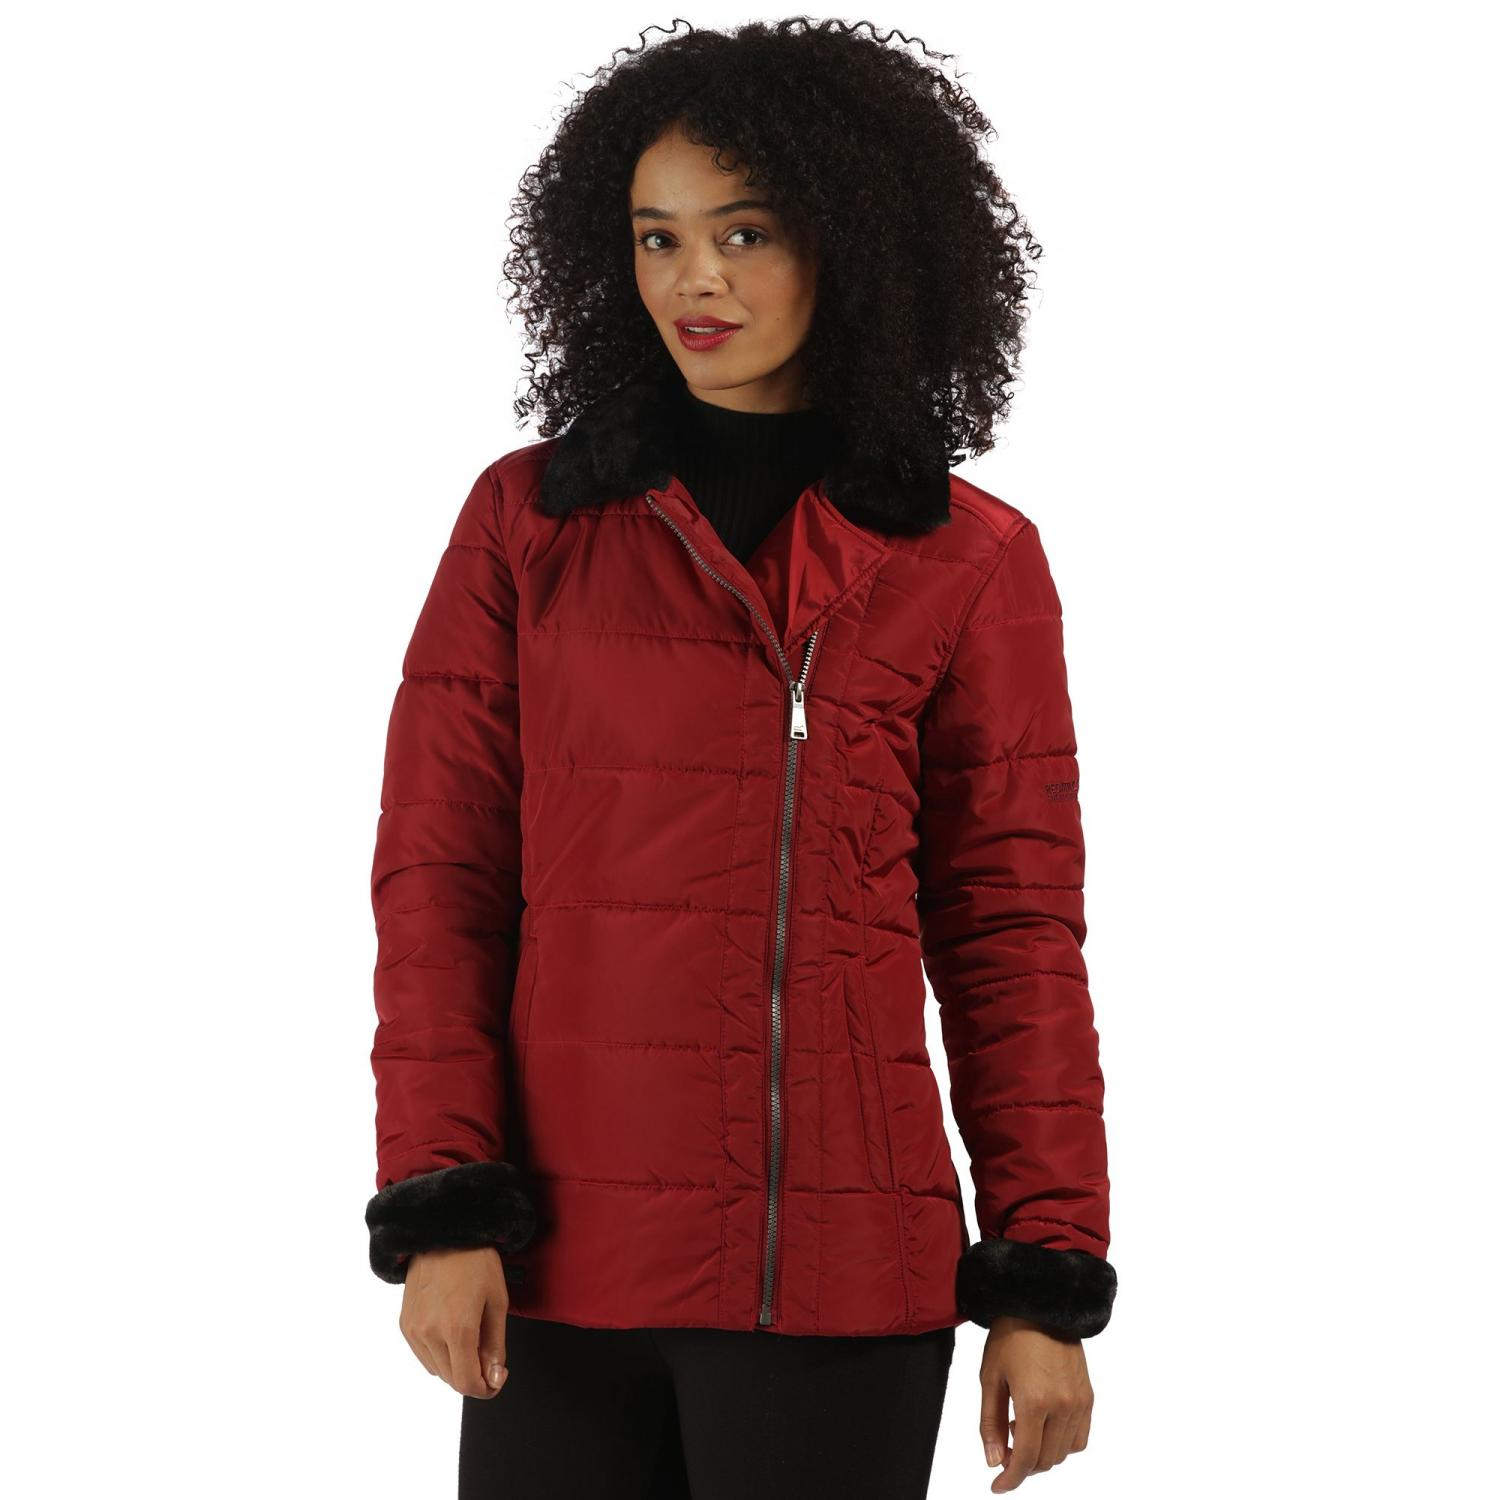 Wren Jacket Rhubarb Red